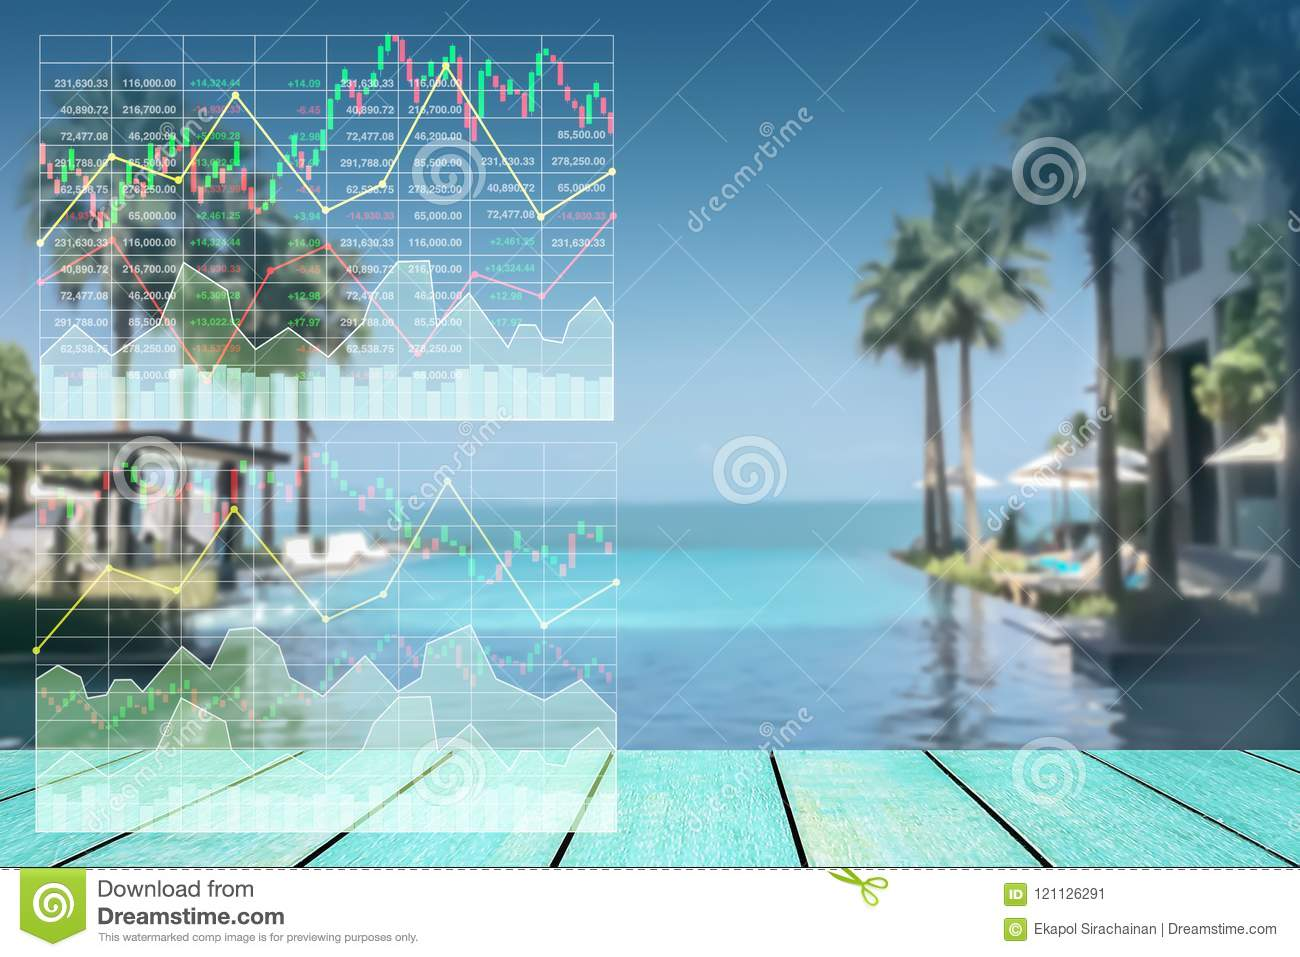 Stock index growth shown by graph and chart.